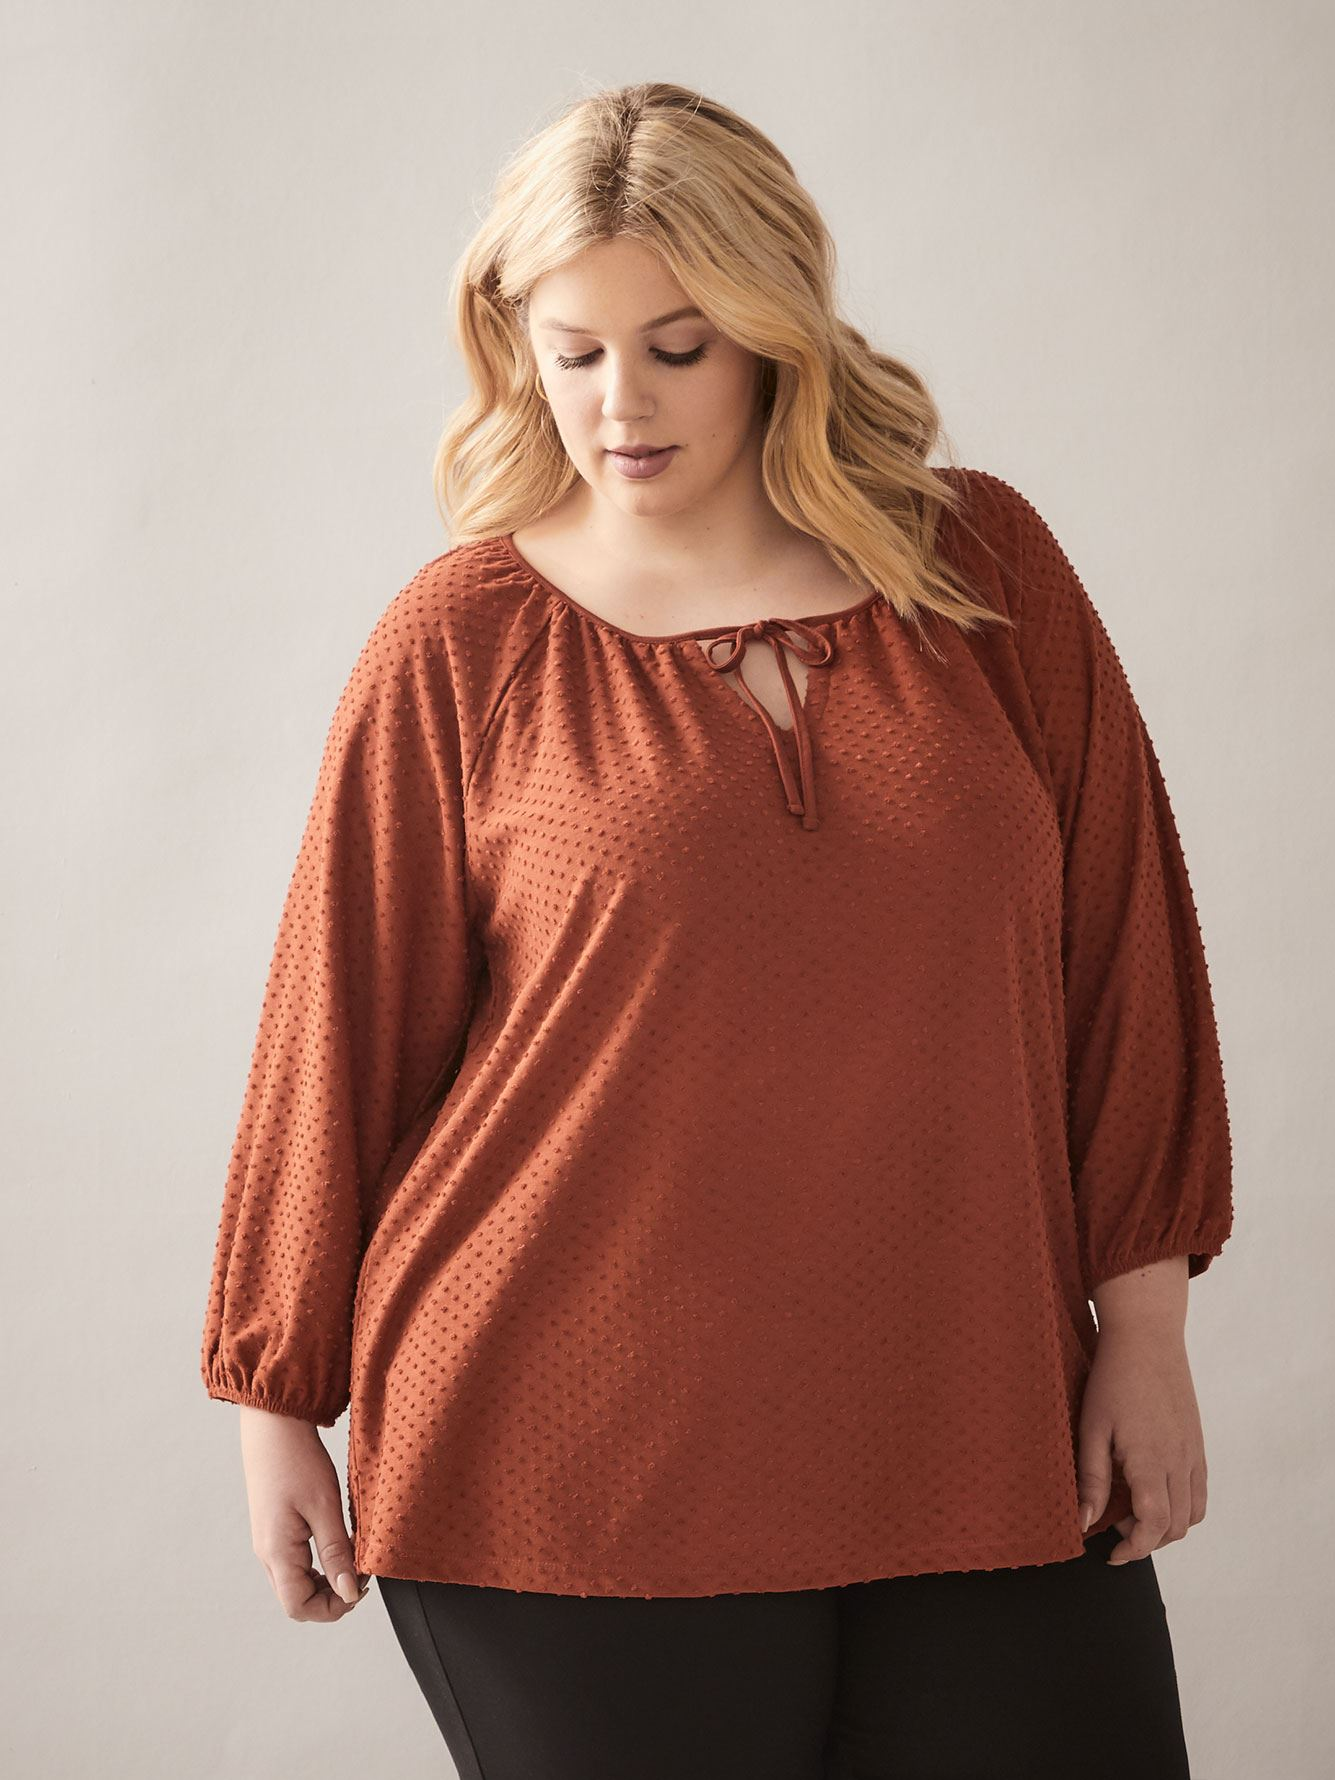 Blouse with Tassel - In Every Story